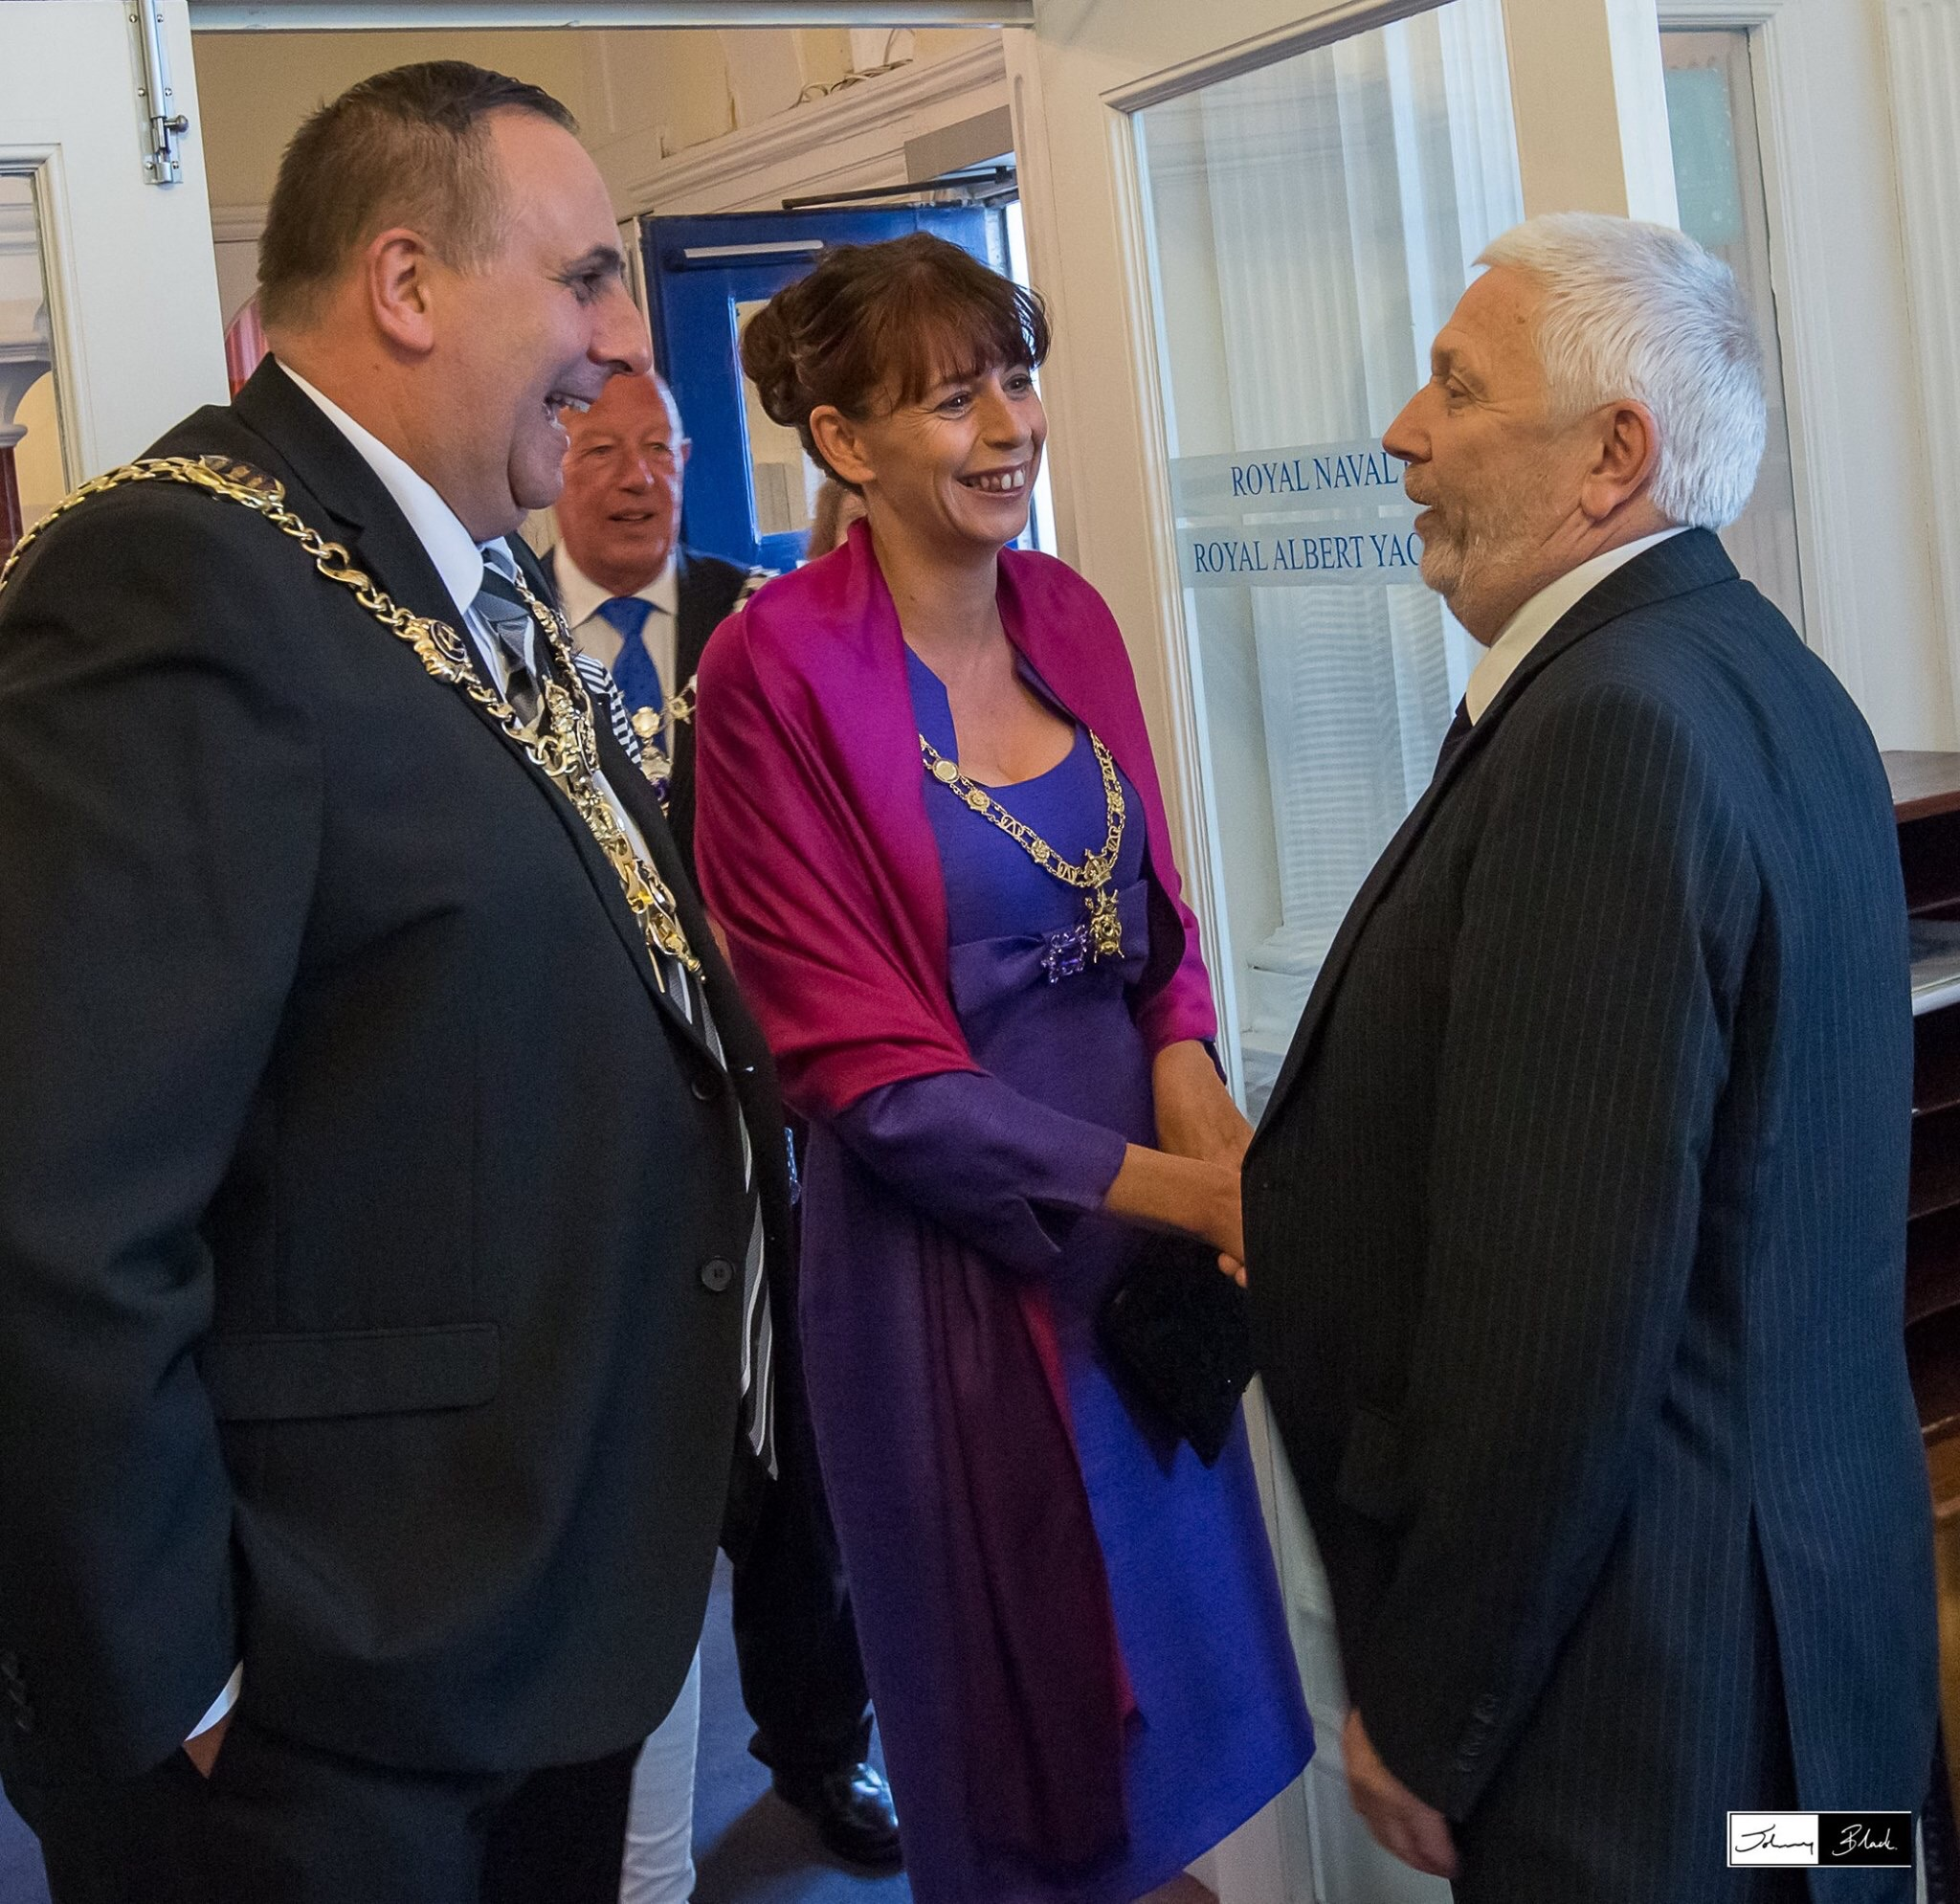 Alan meeting with Portsmouths new Mayor David Fuller